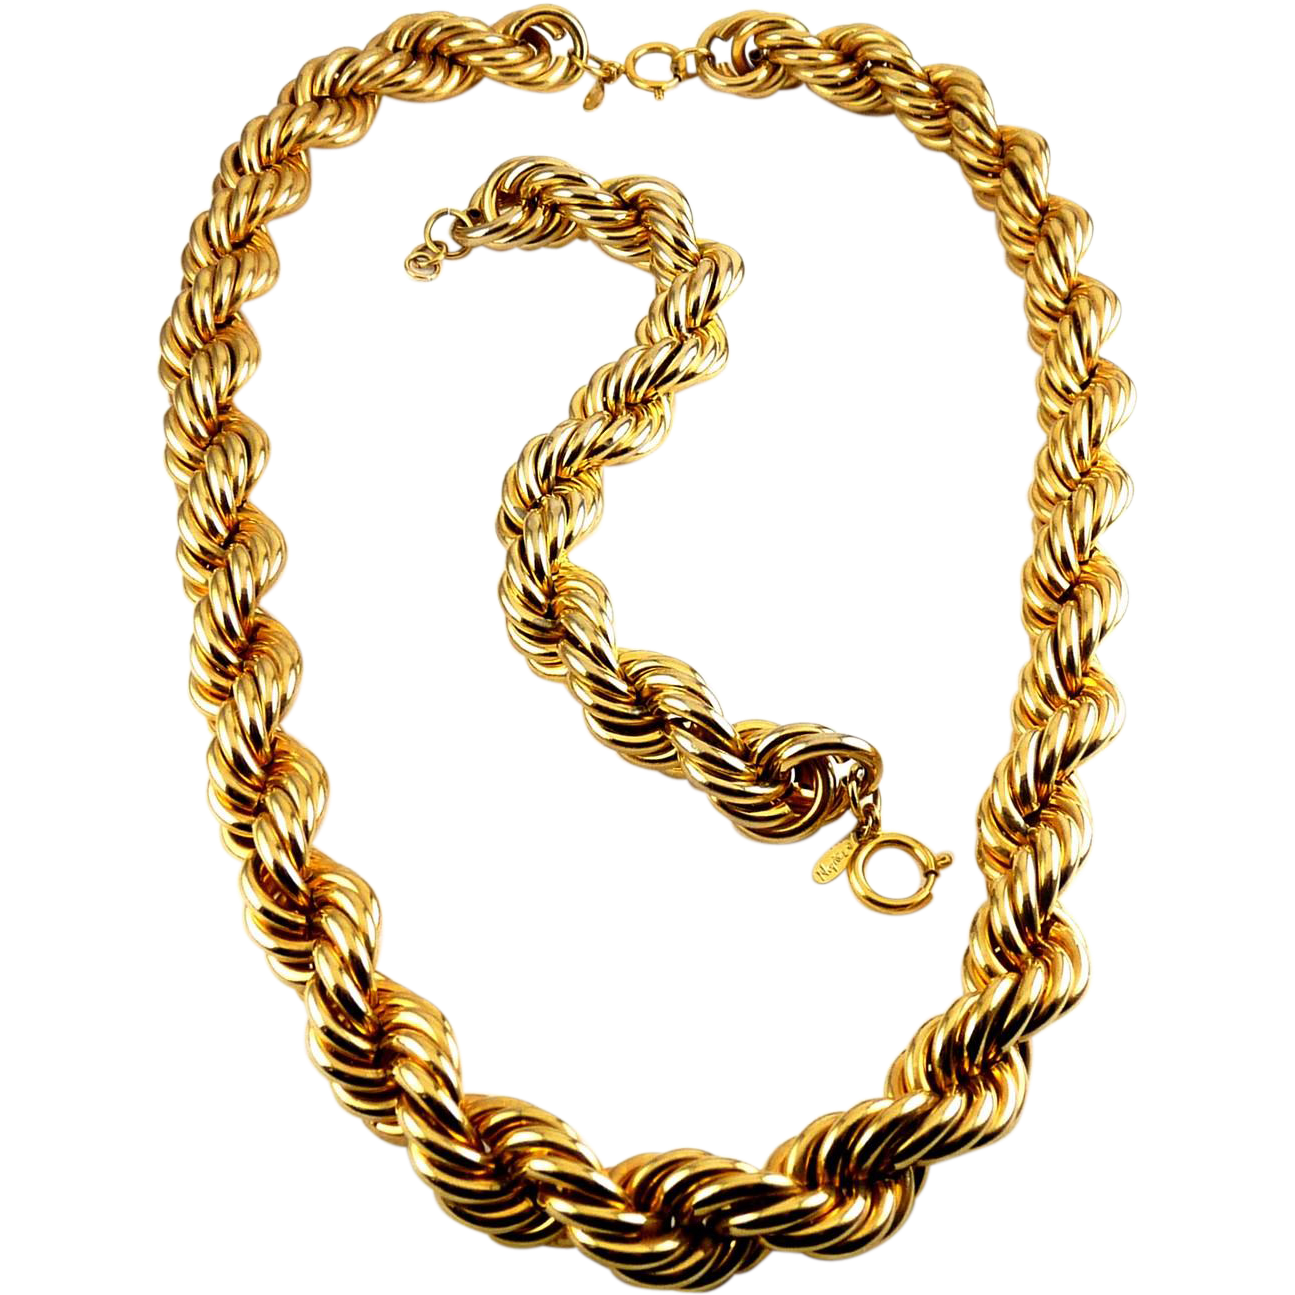 NAPIER Hefty Wide Twisted Cable Necklace & Bracelet Set - 1980s Power Look